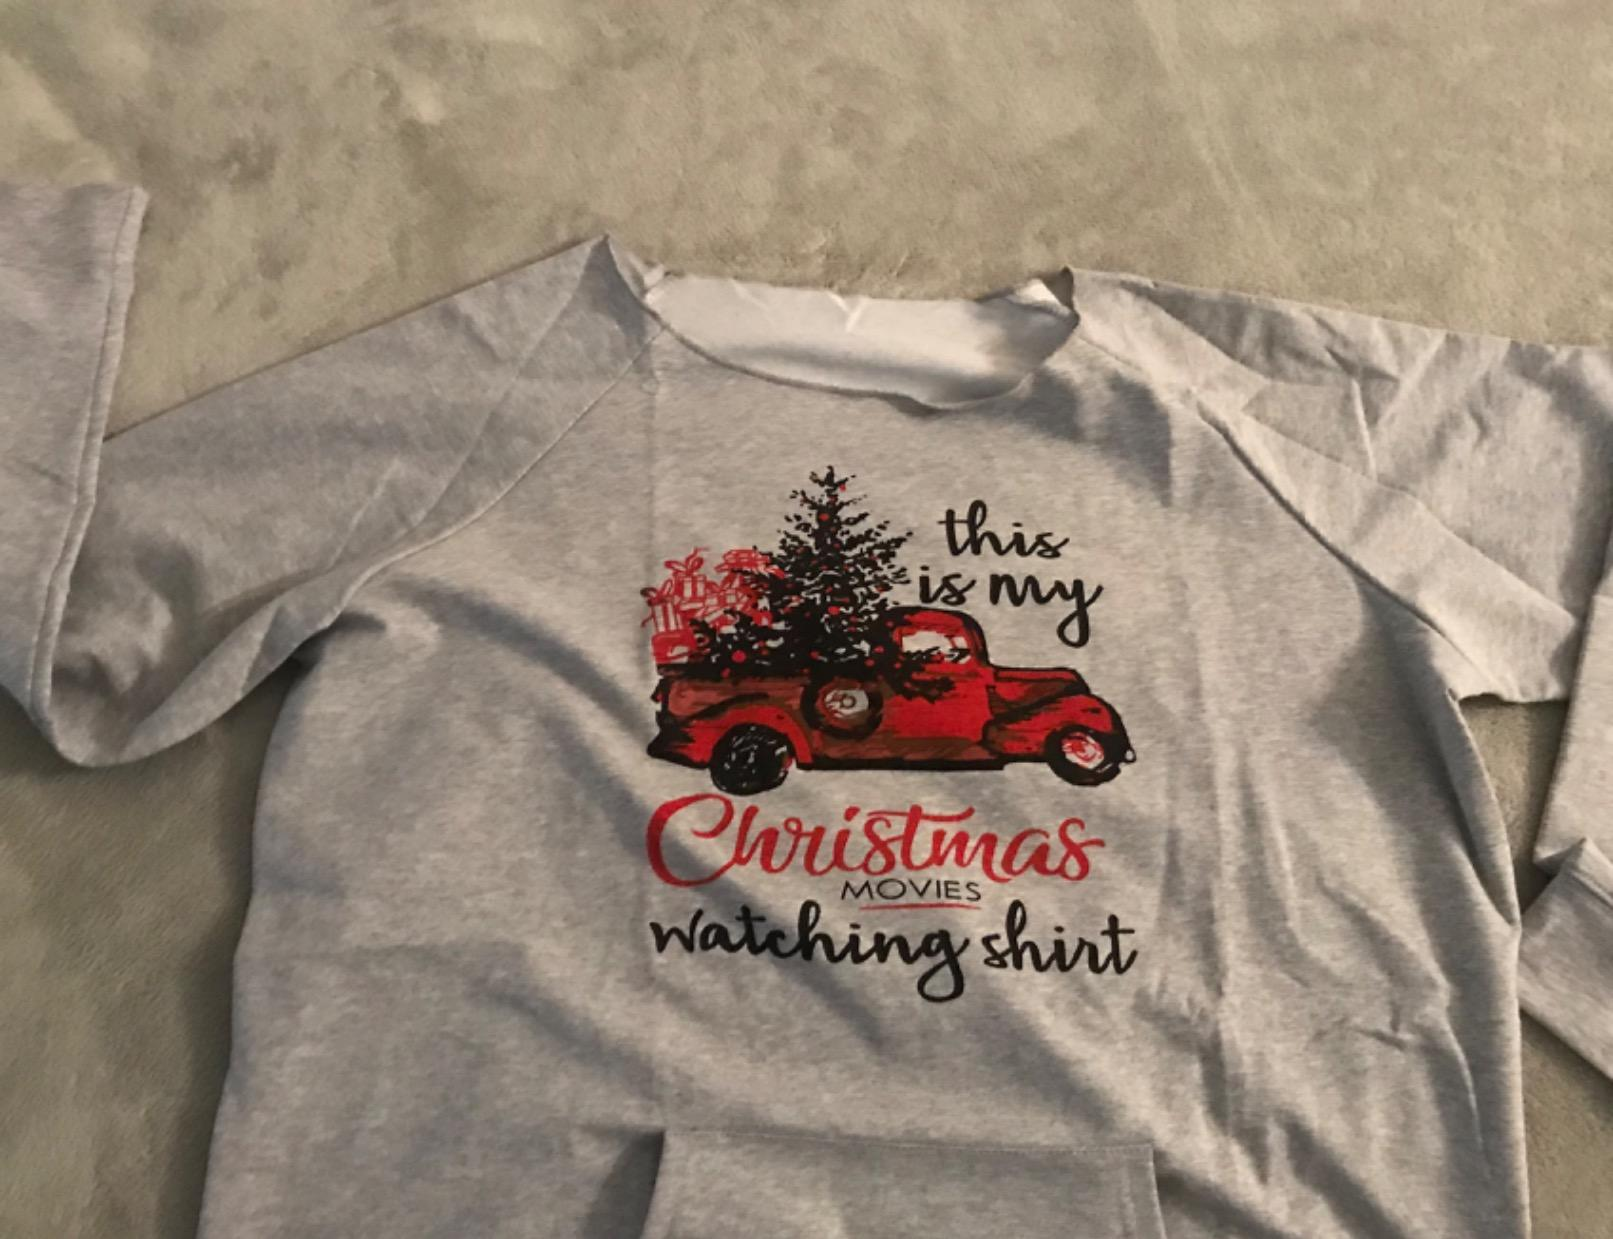 Best Seattle Seahawks This Is My Hallmark Christmas Movies Watching Shirt photo review